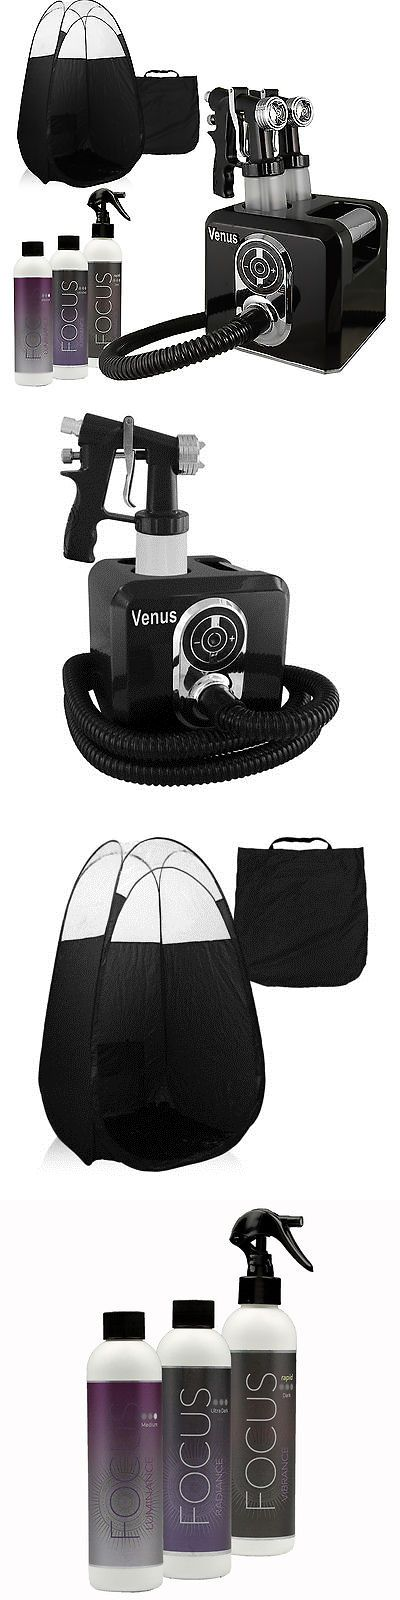 Airbrush Tanning Kits: Venus Spray Tan Machine Kit With Tent And Sunless Airbrush Tanning Solution -> BUY IT NOW ONLY: $239 on eBay!